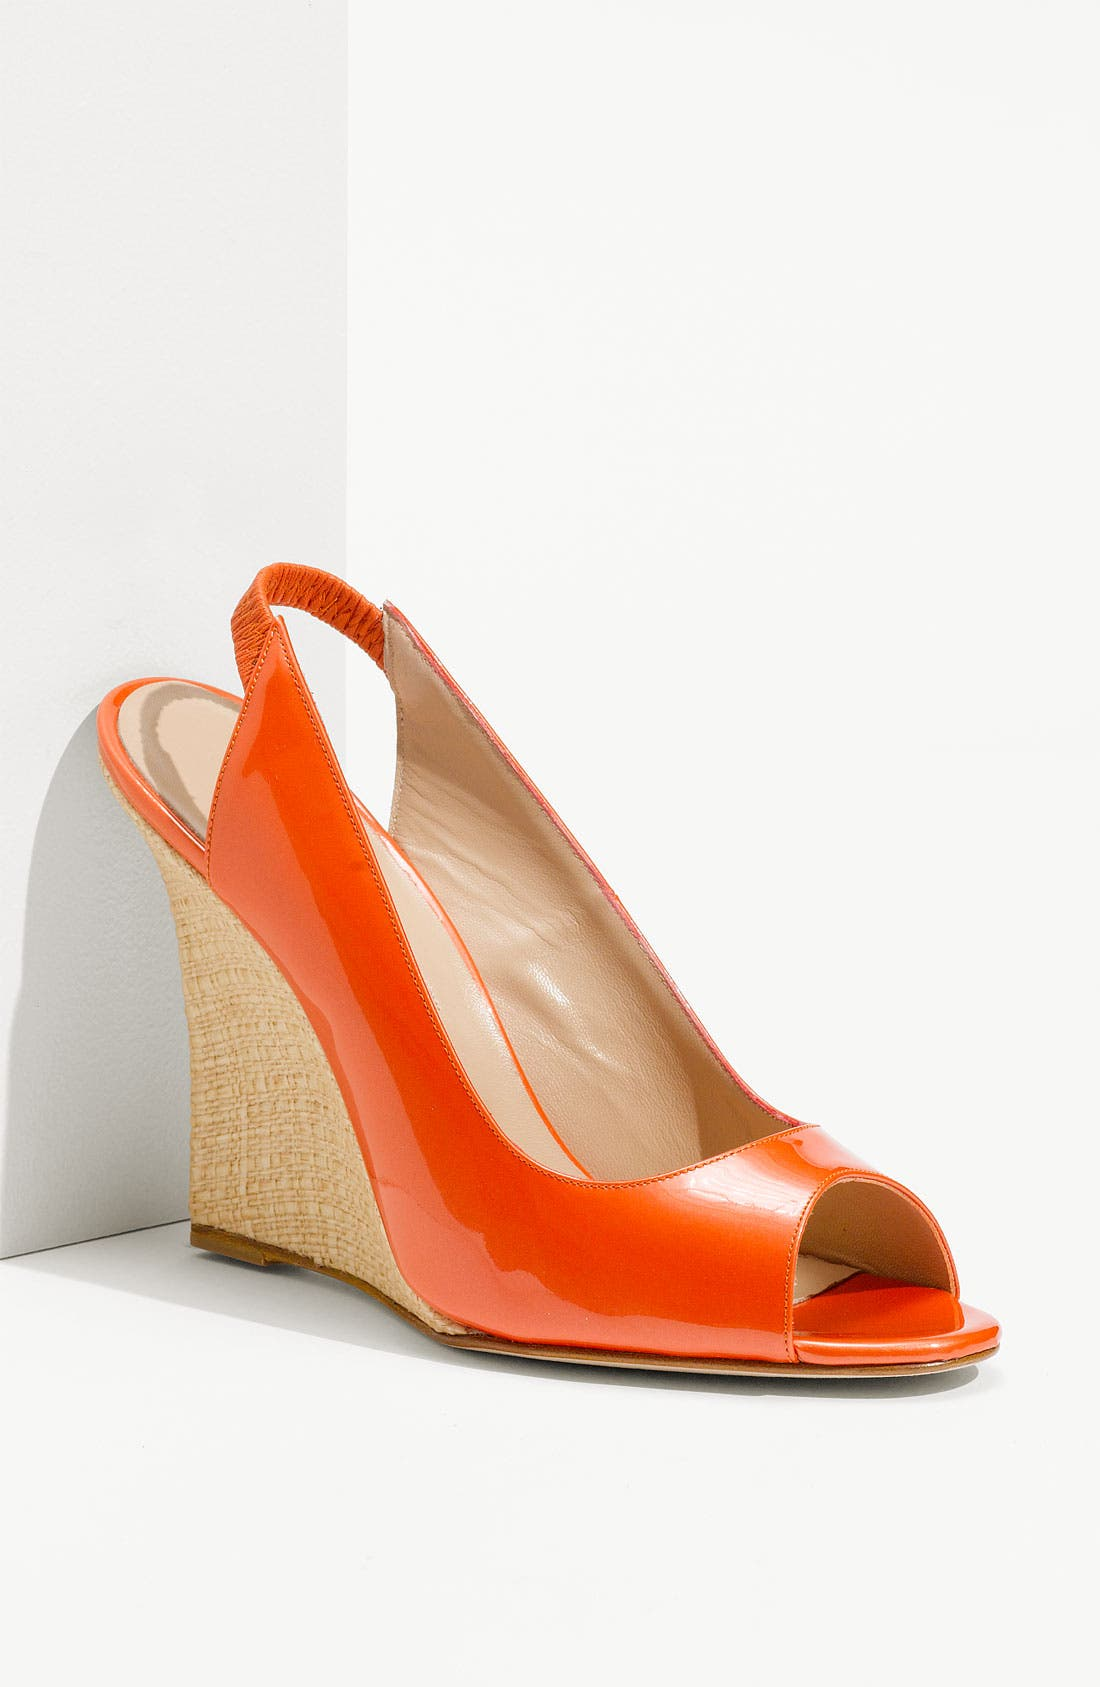 'Maniapla' Slingback Wedge,                             Main thumbnail 2, color,